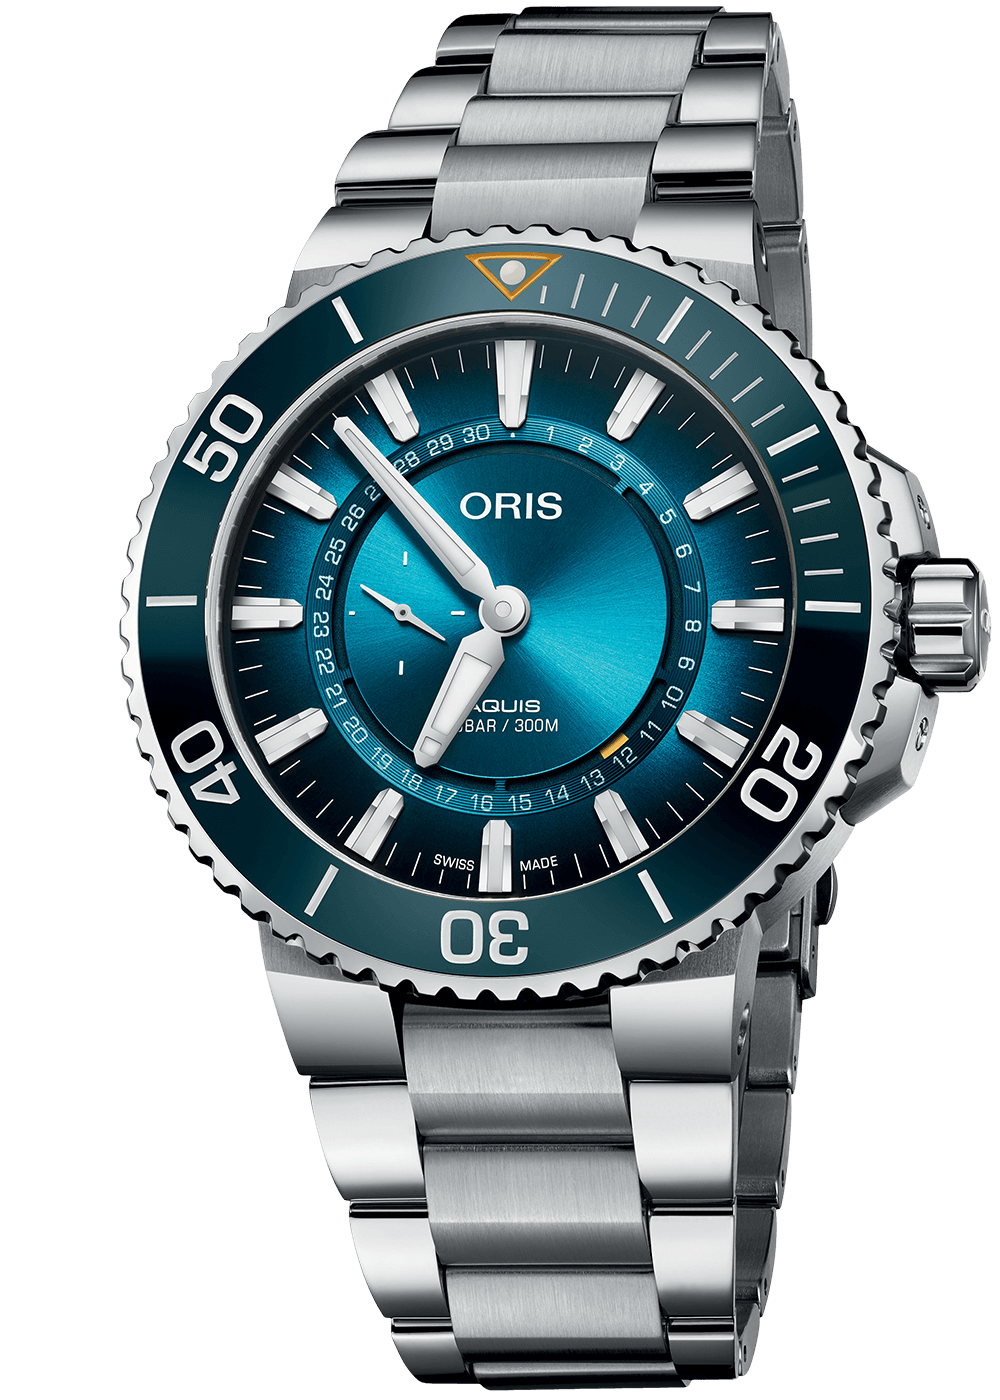 Aquis Great Barrier Reef Limited Edition